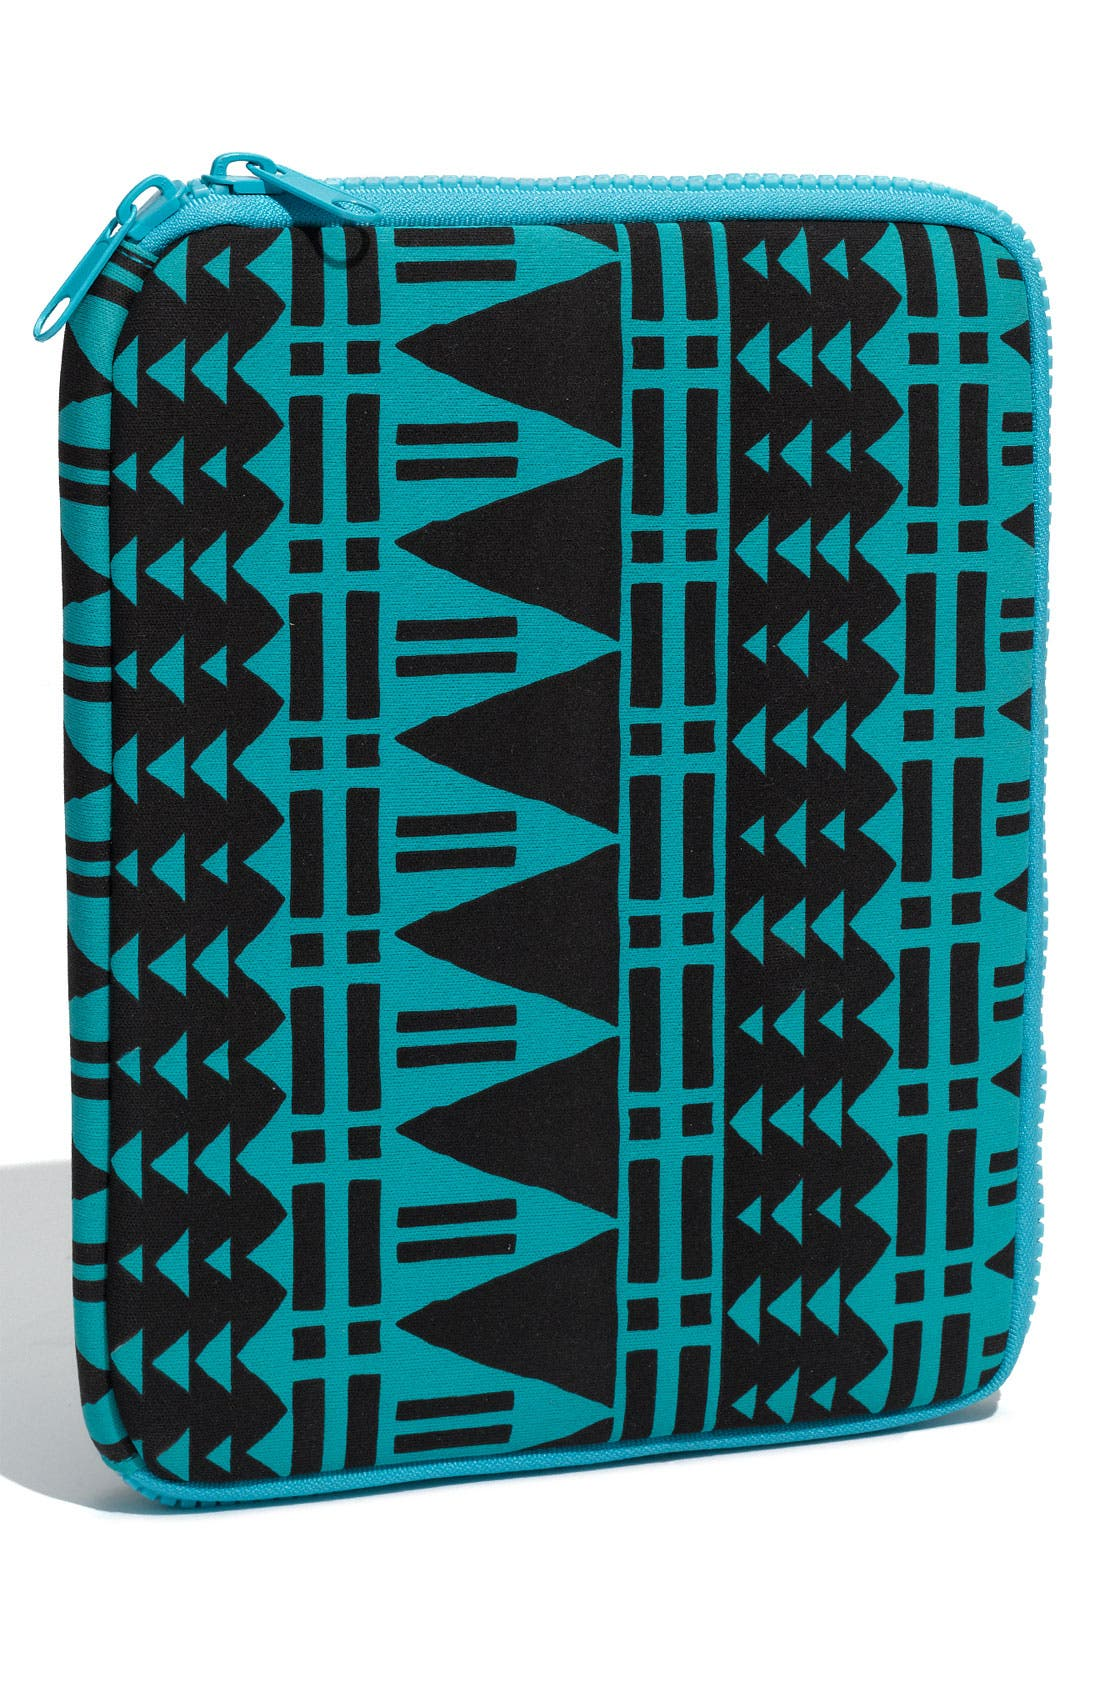 Alternate Image 1 Selected - Lulu Geometric Printed iPad Case